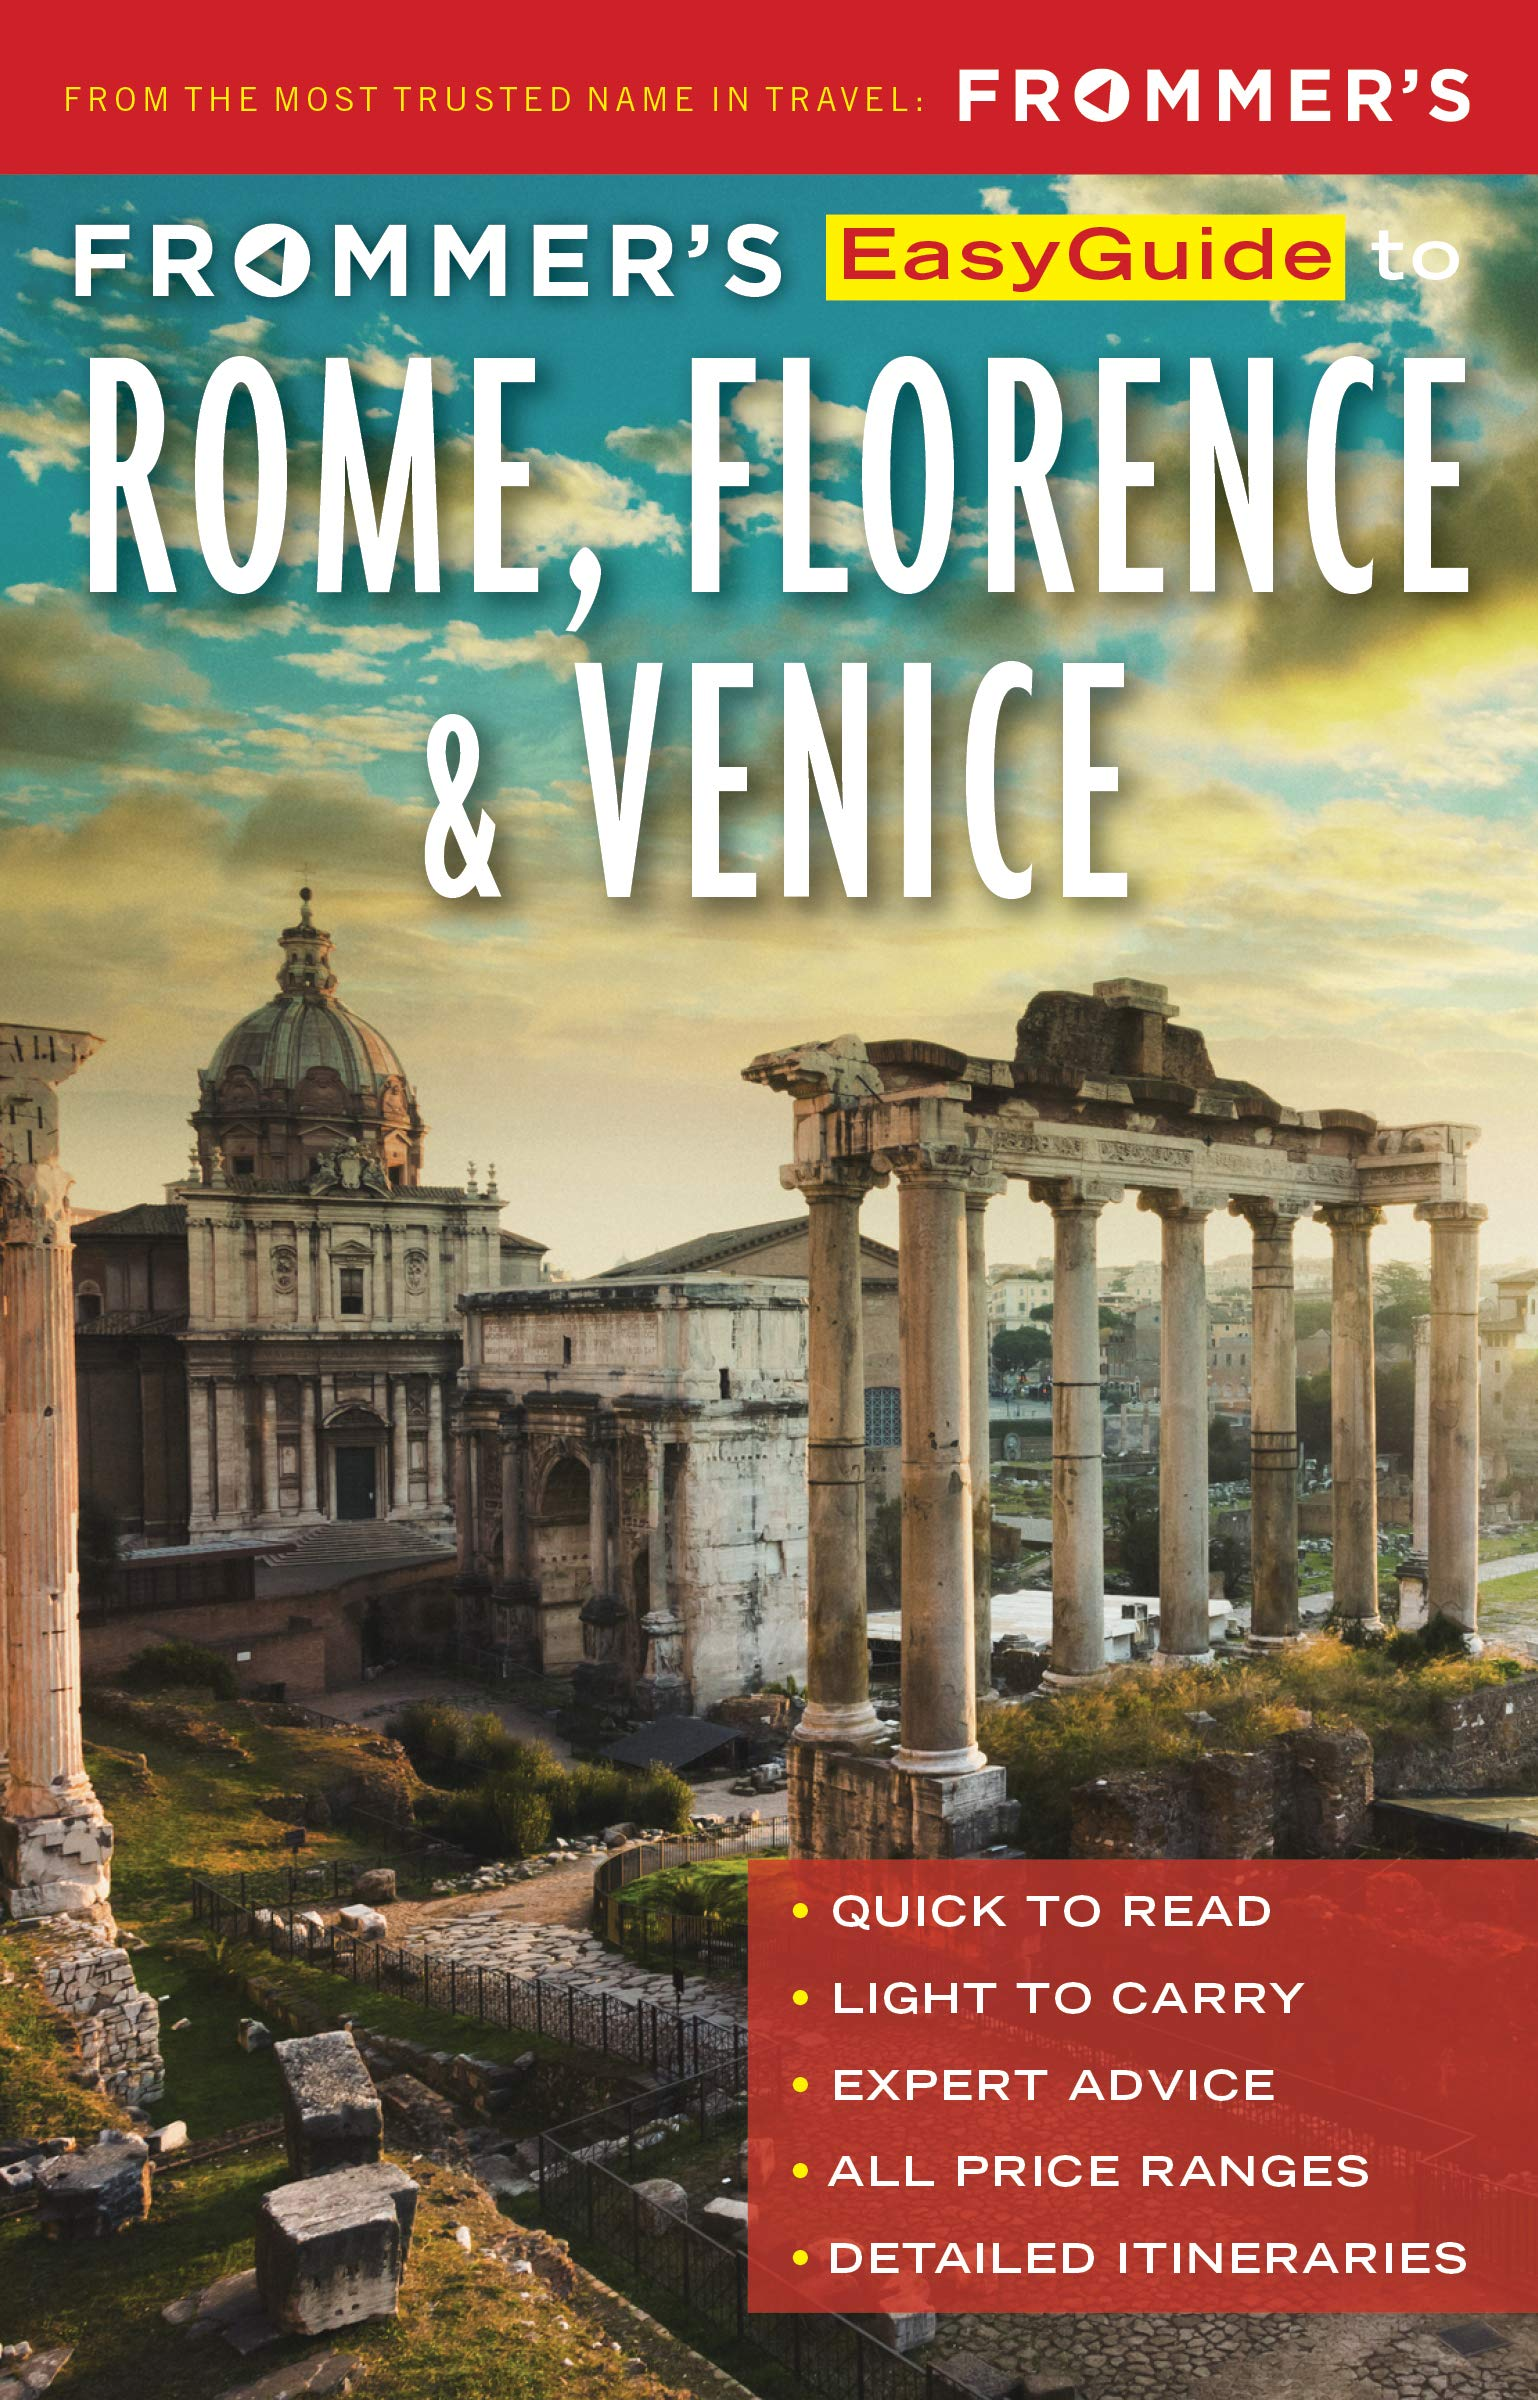 Frommer's Easy Guide Rome, Florence & Venice 2018